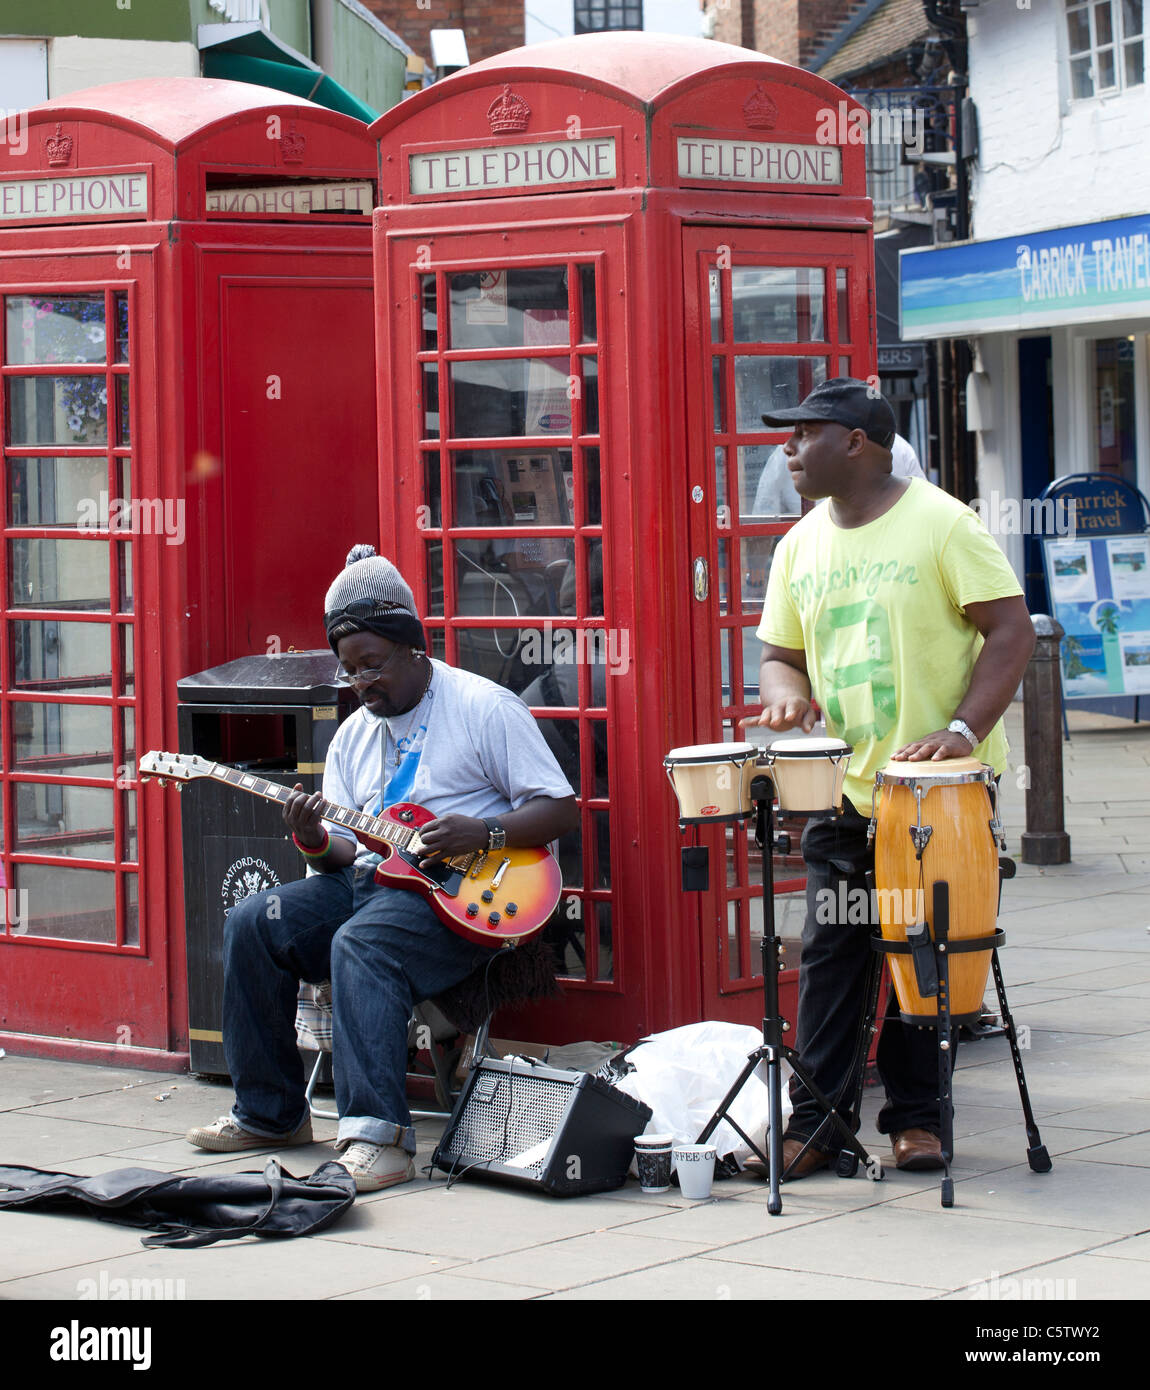 A pair of buskers on a street in Stratford upon Avon, Warwickshire, England, UK. - Stock Image